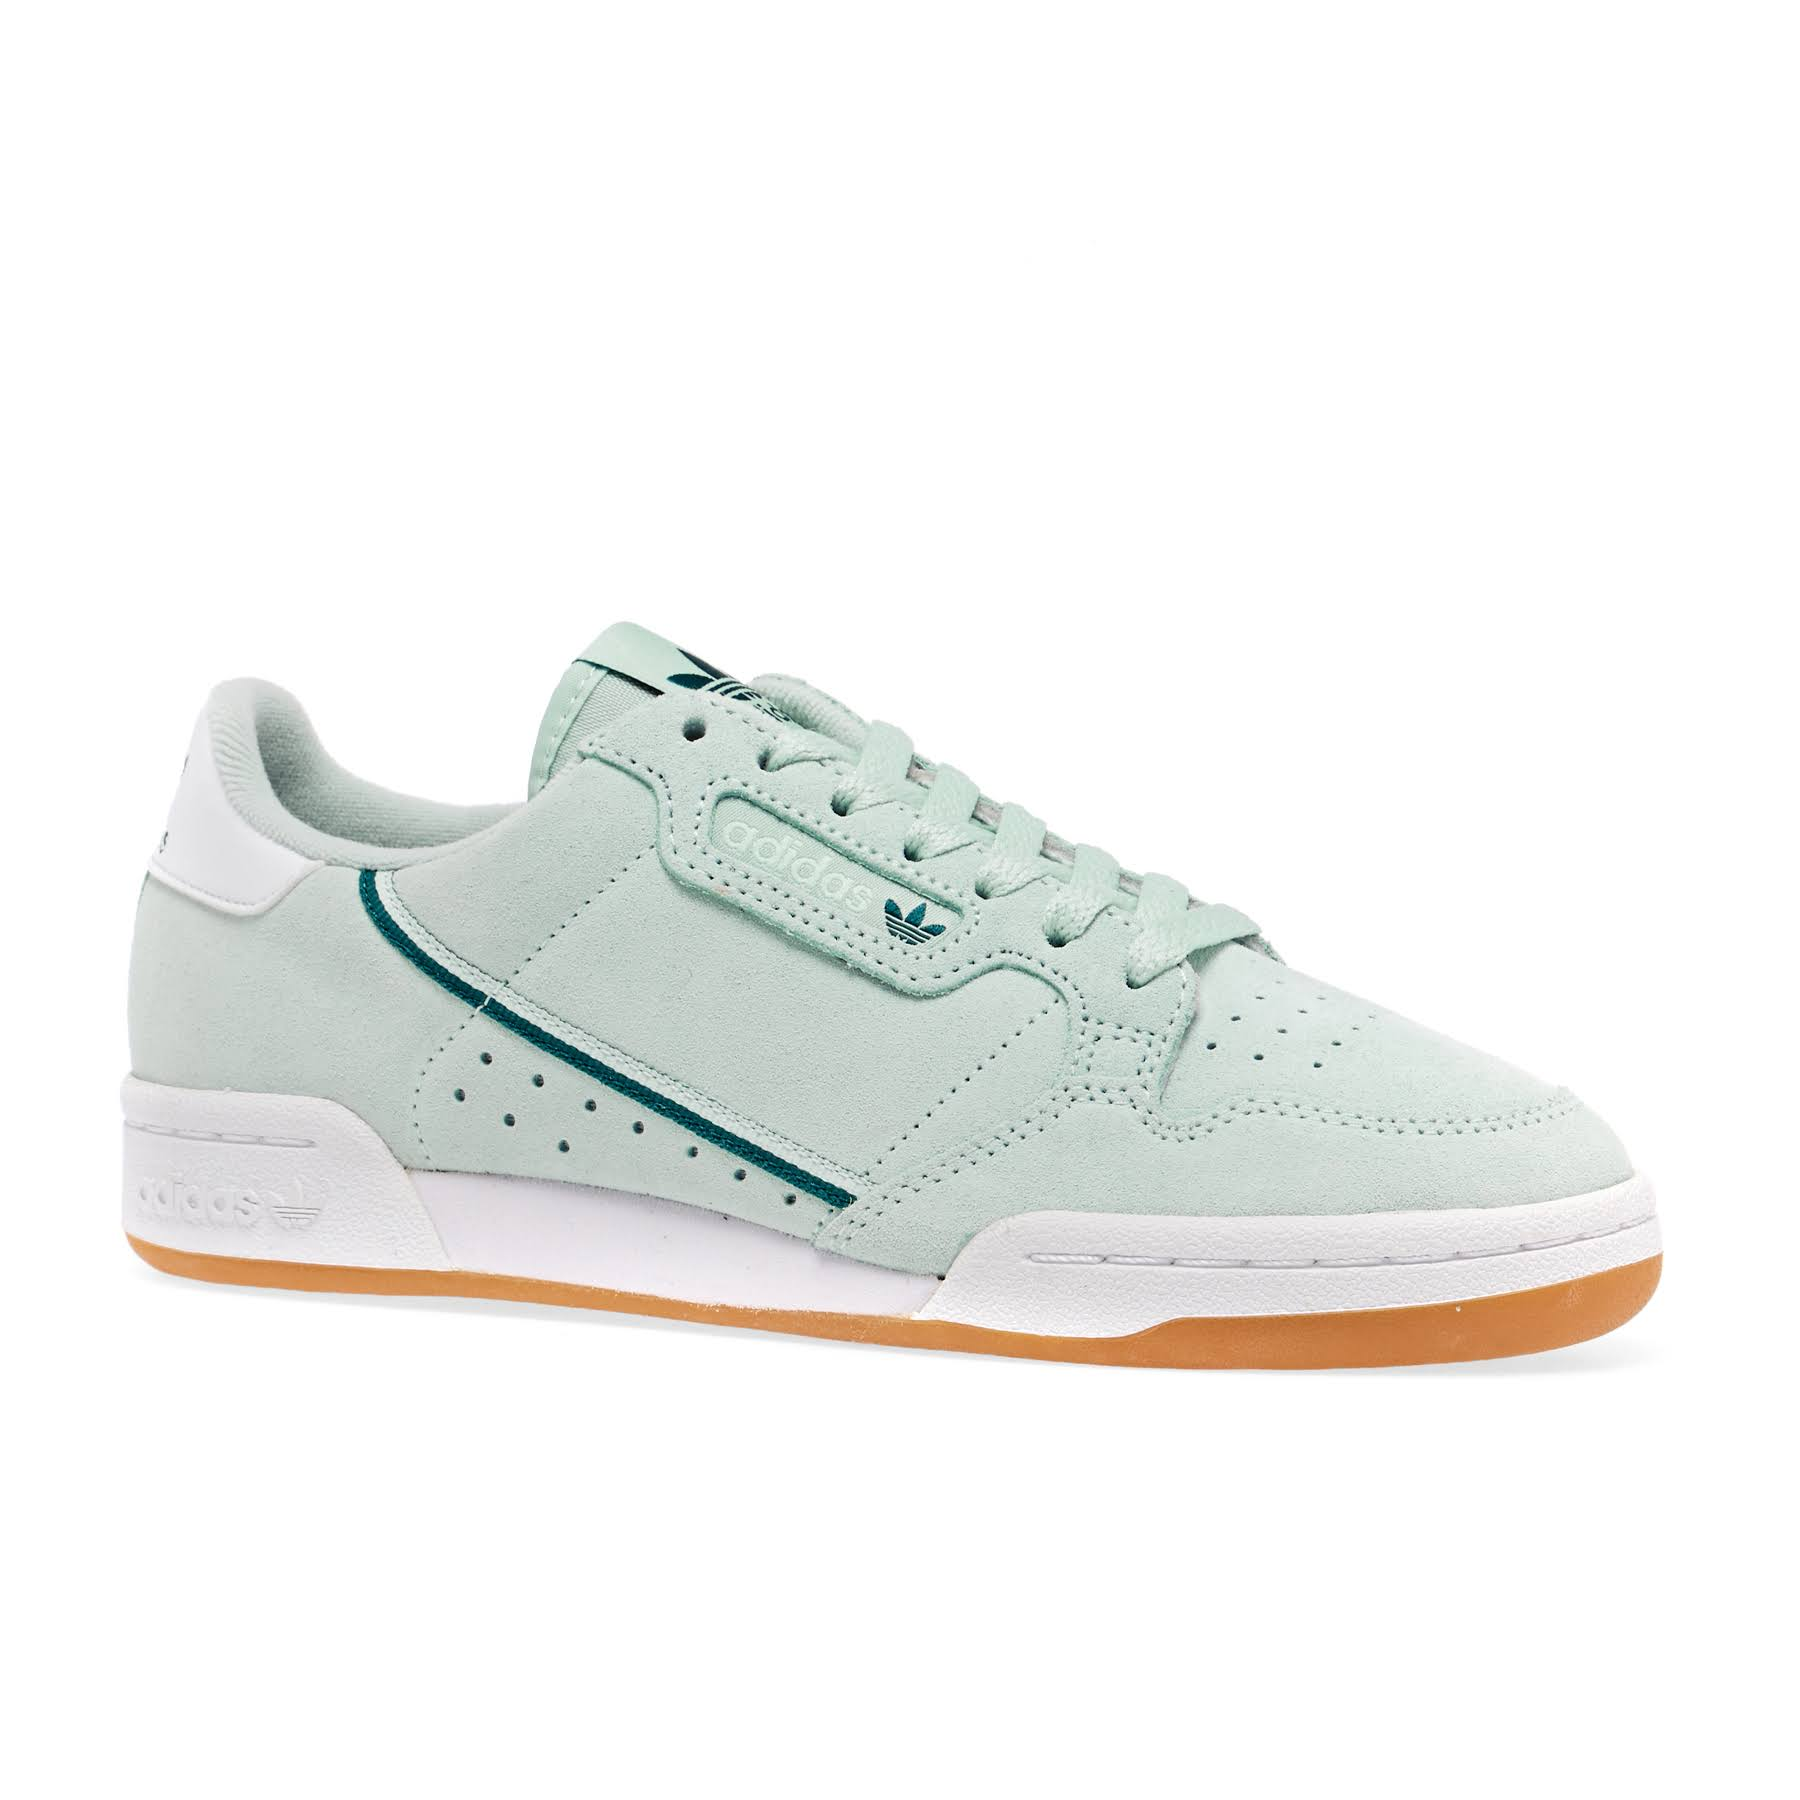 Adidas Continental 80 Shoes - Green - Women